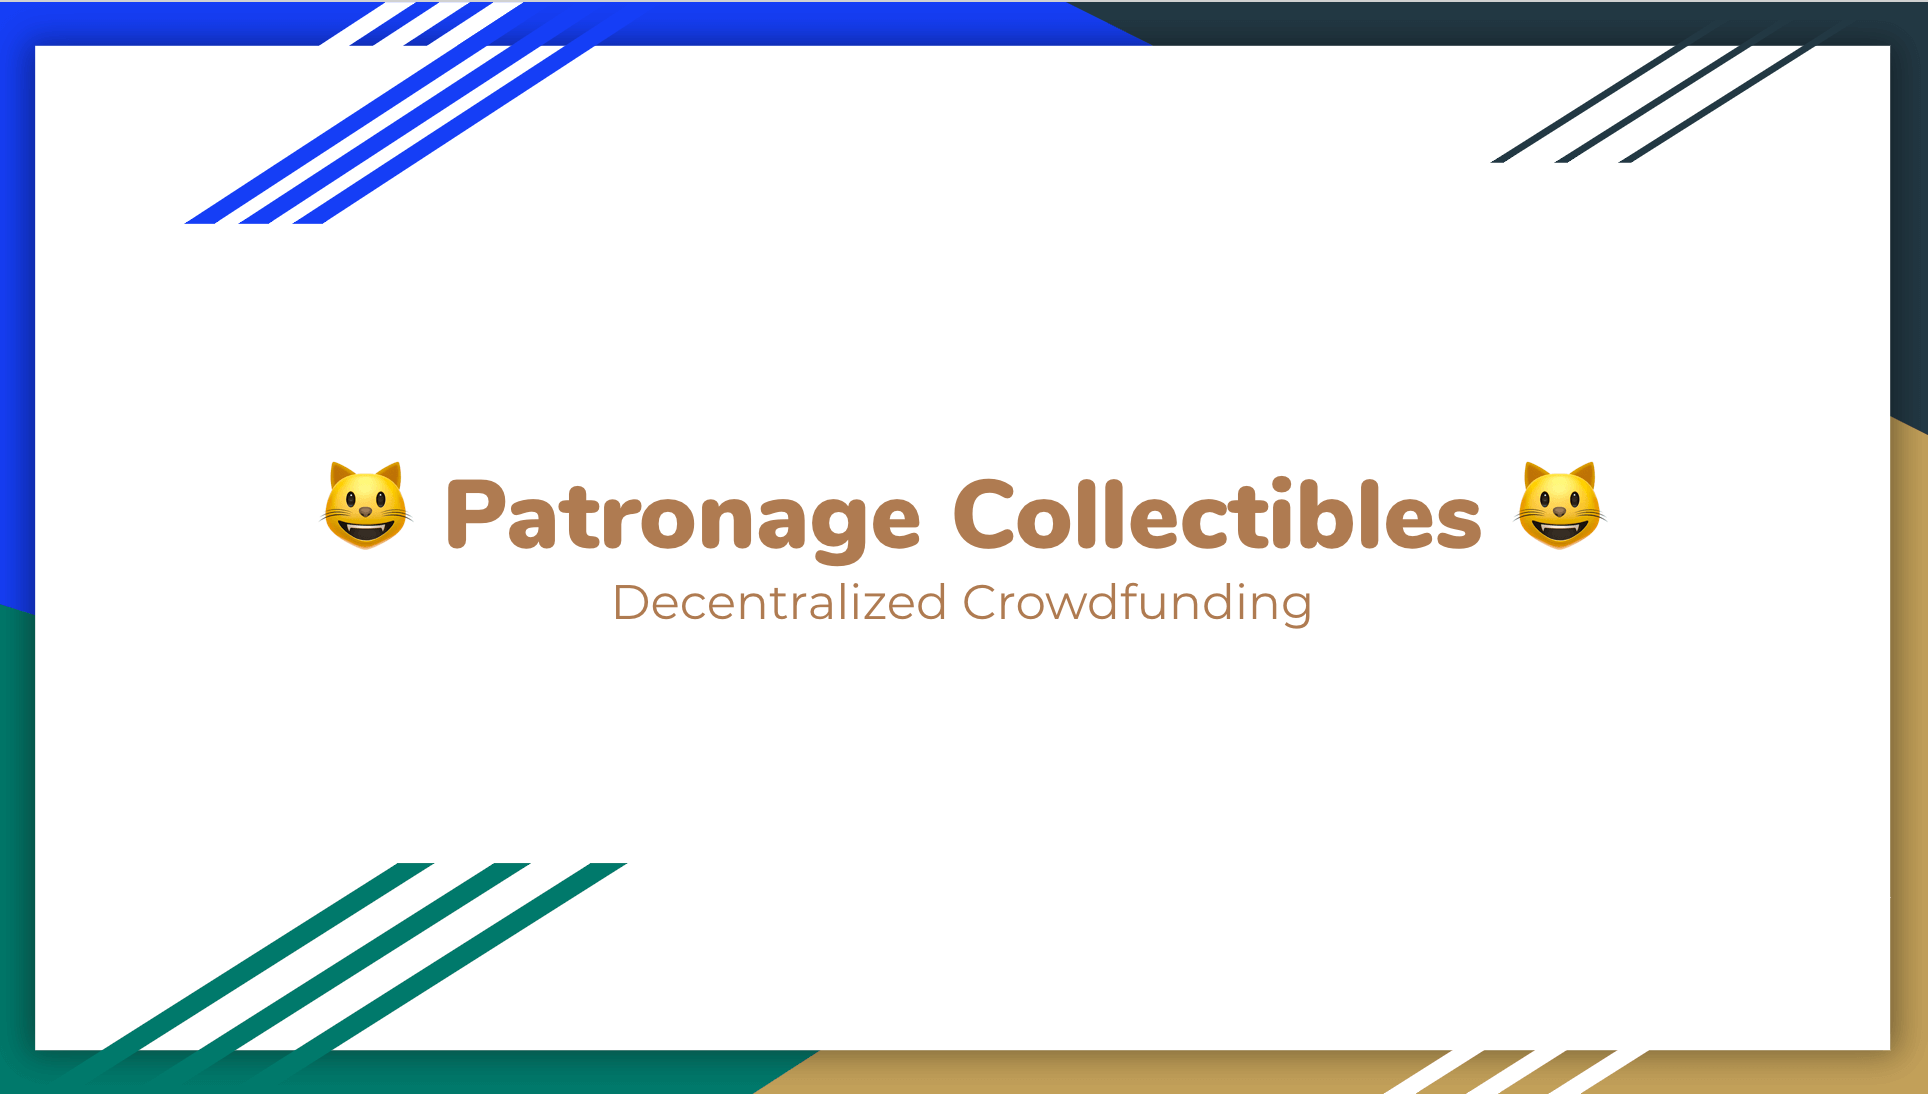 Patronage Collectibles